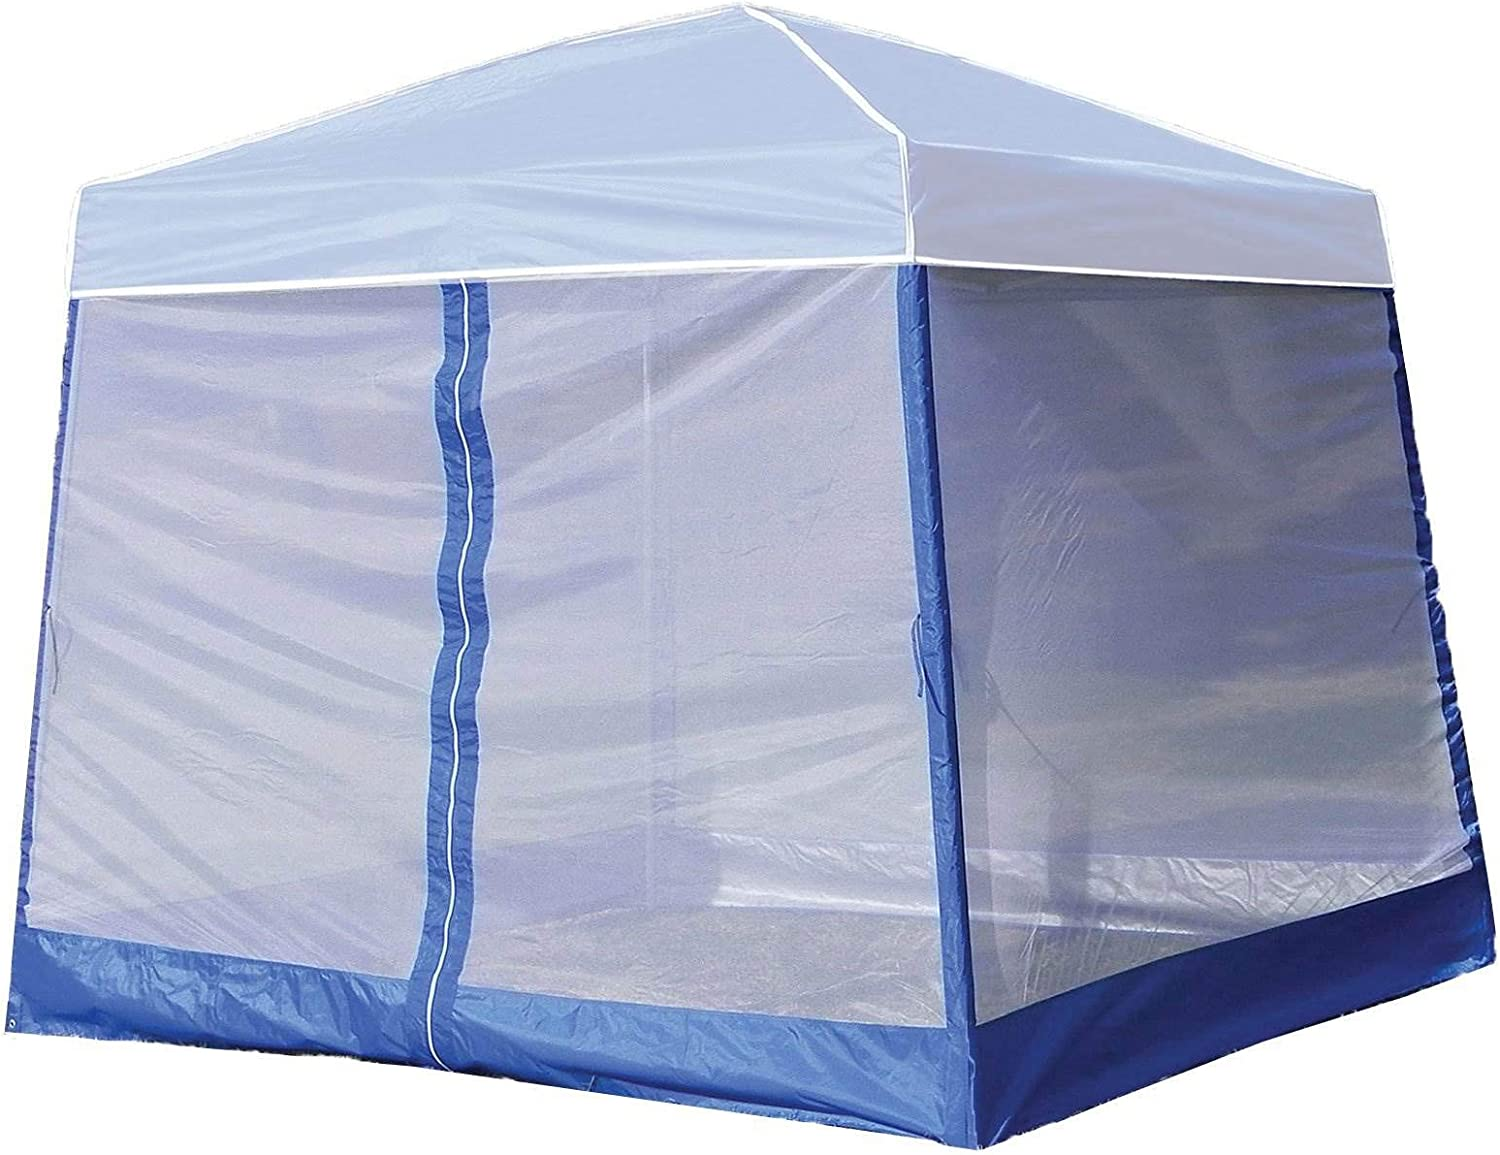 Z-Shade 10 Foot Angled Leg Screenroom Tent Camping Outdoor Patio Shelter, White (Canopy Not Included)